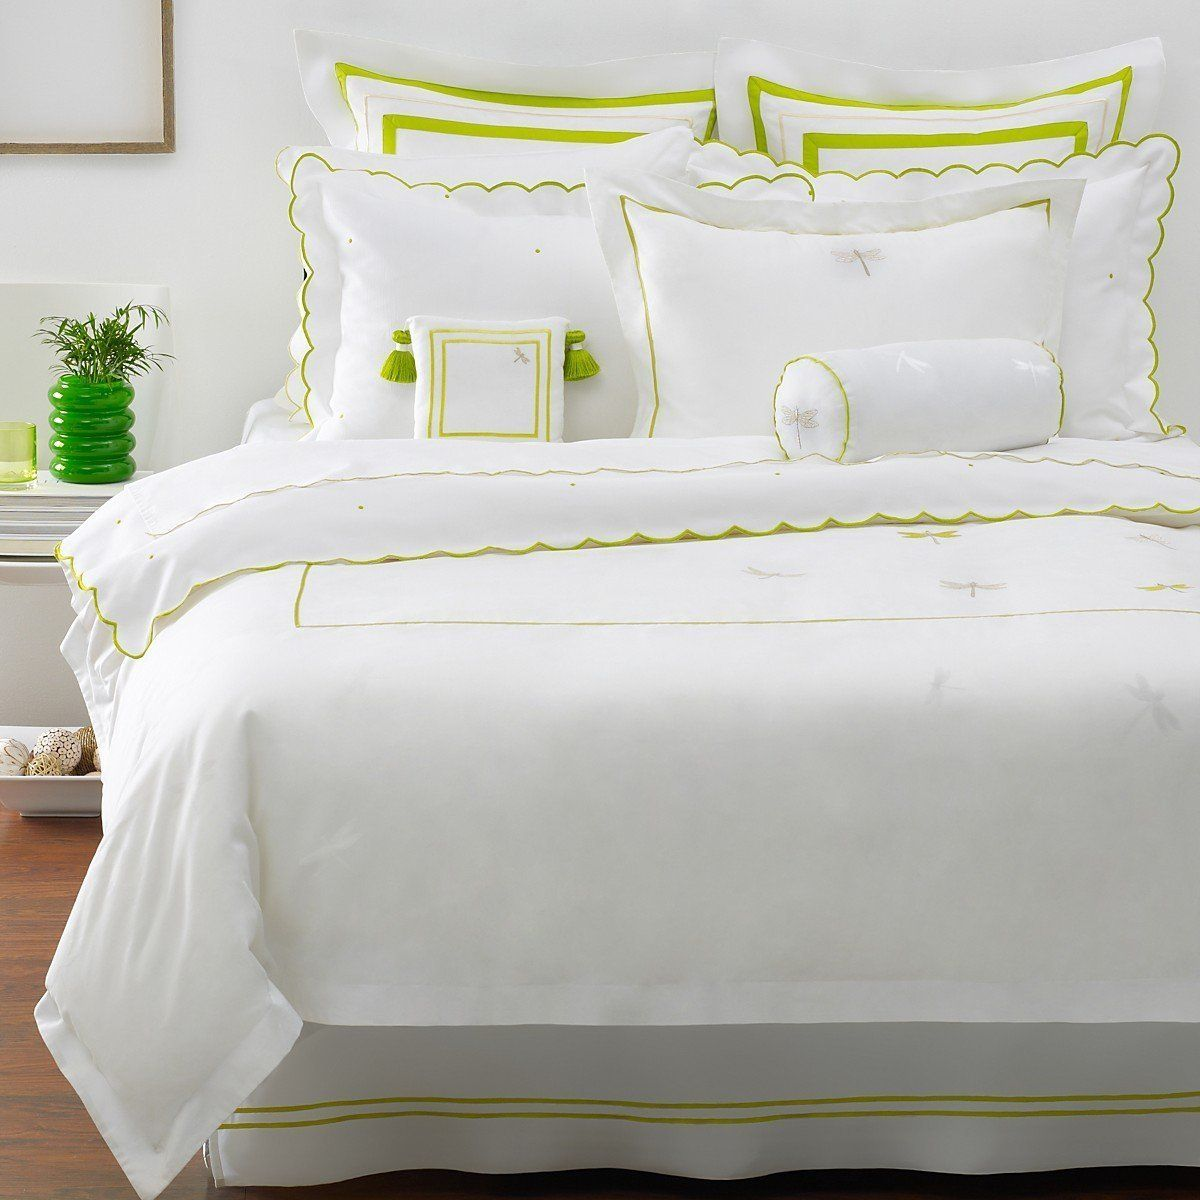 White bedding with chartreuse accents